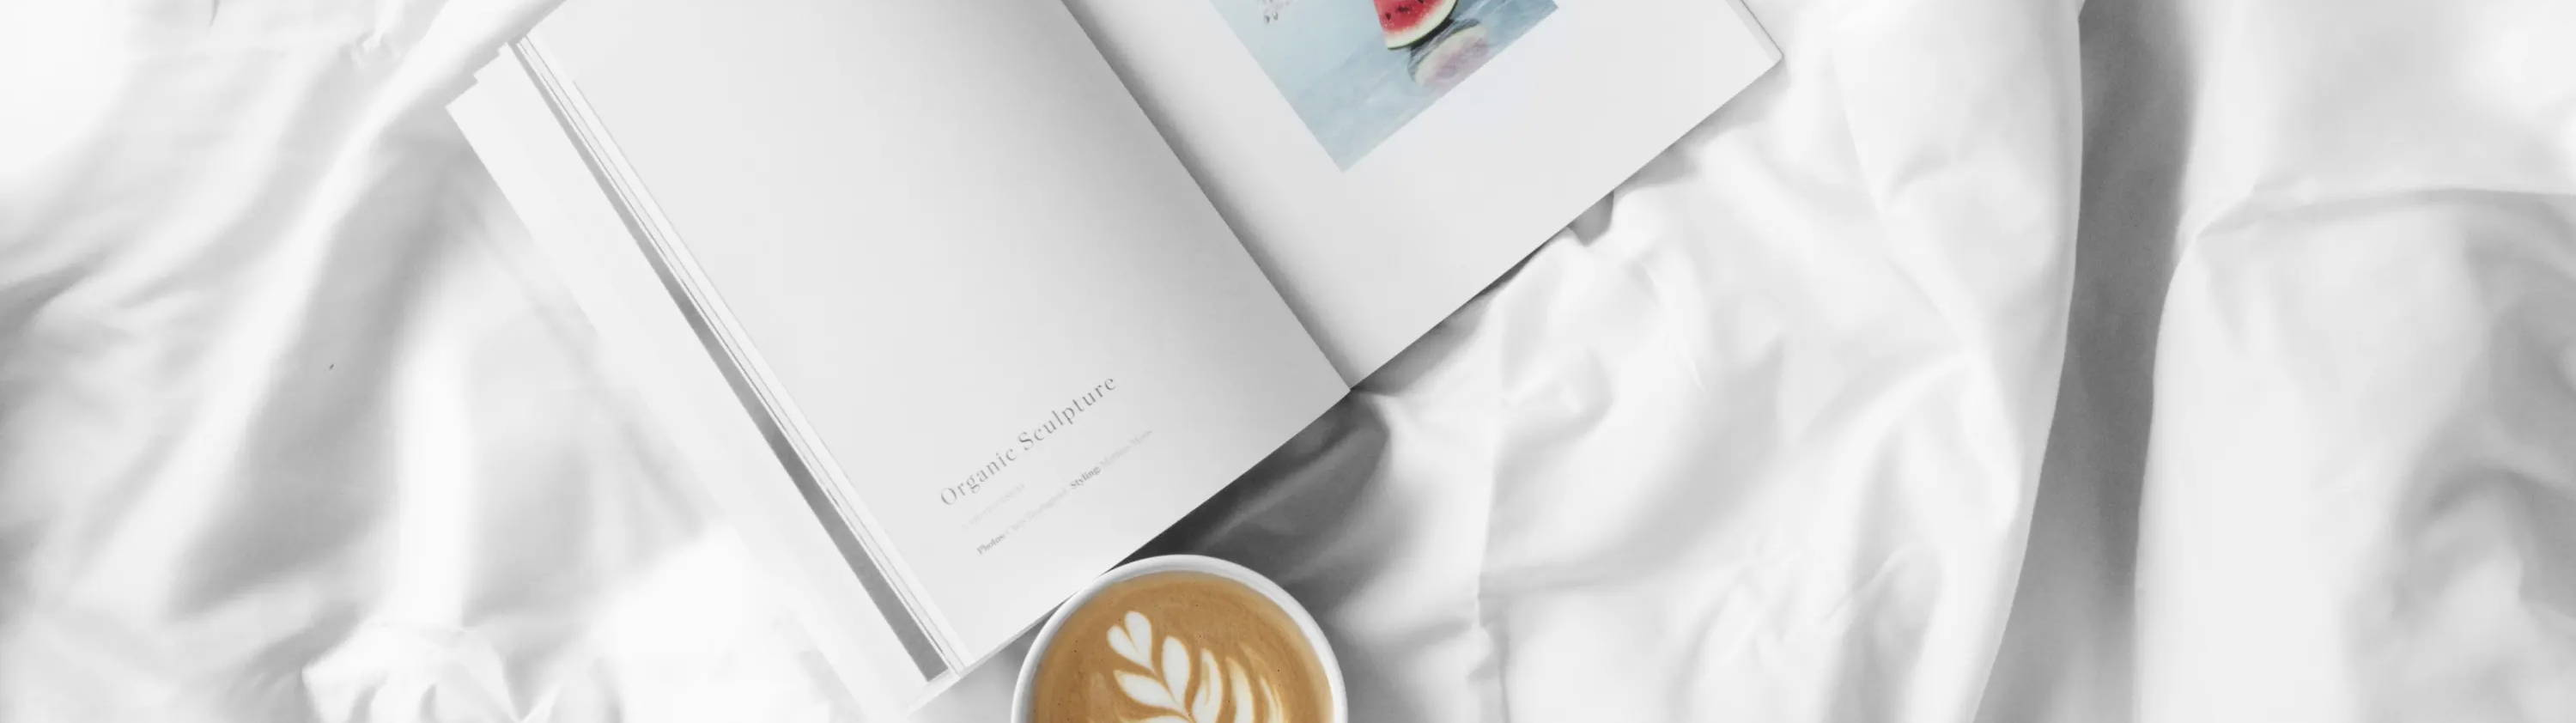 An open book with cup of latte on white eucalyptus bed sheets